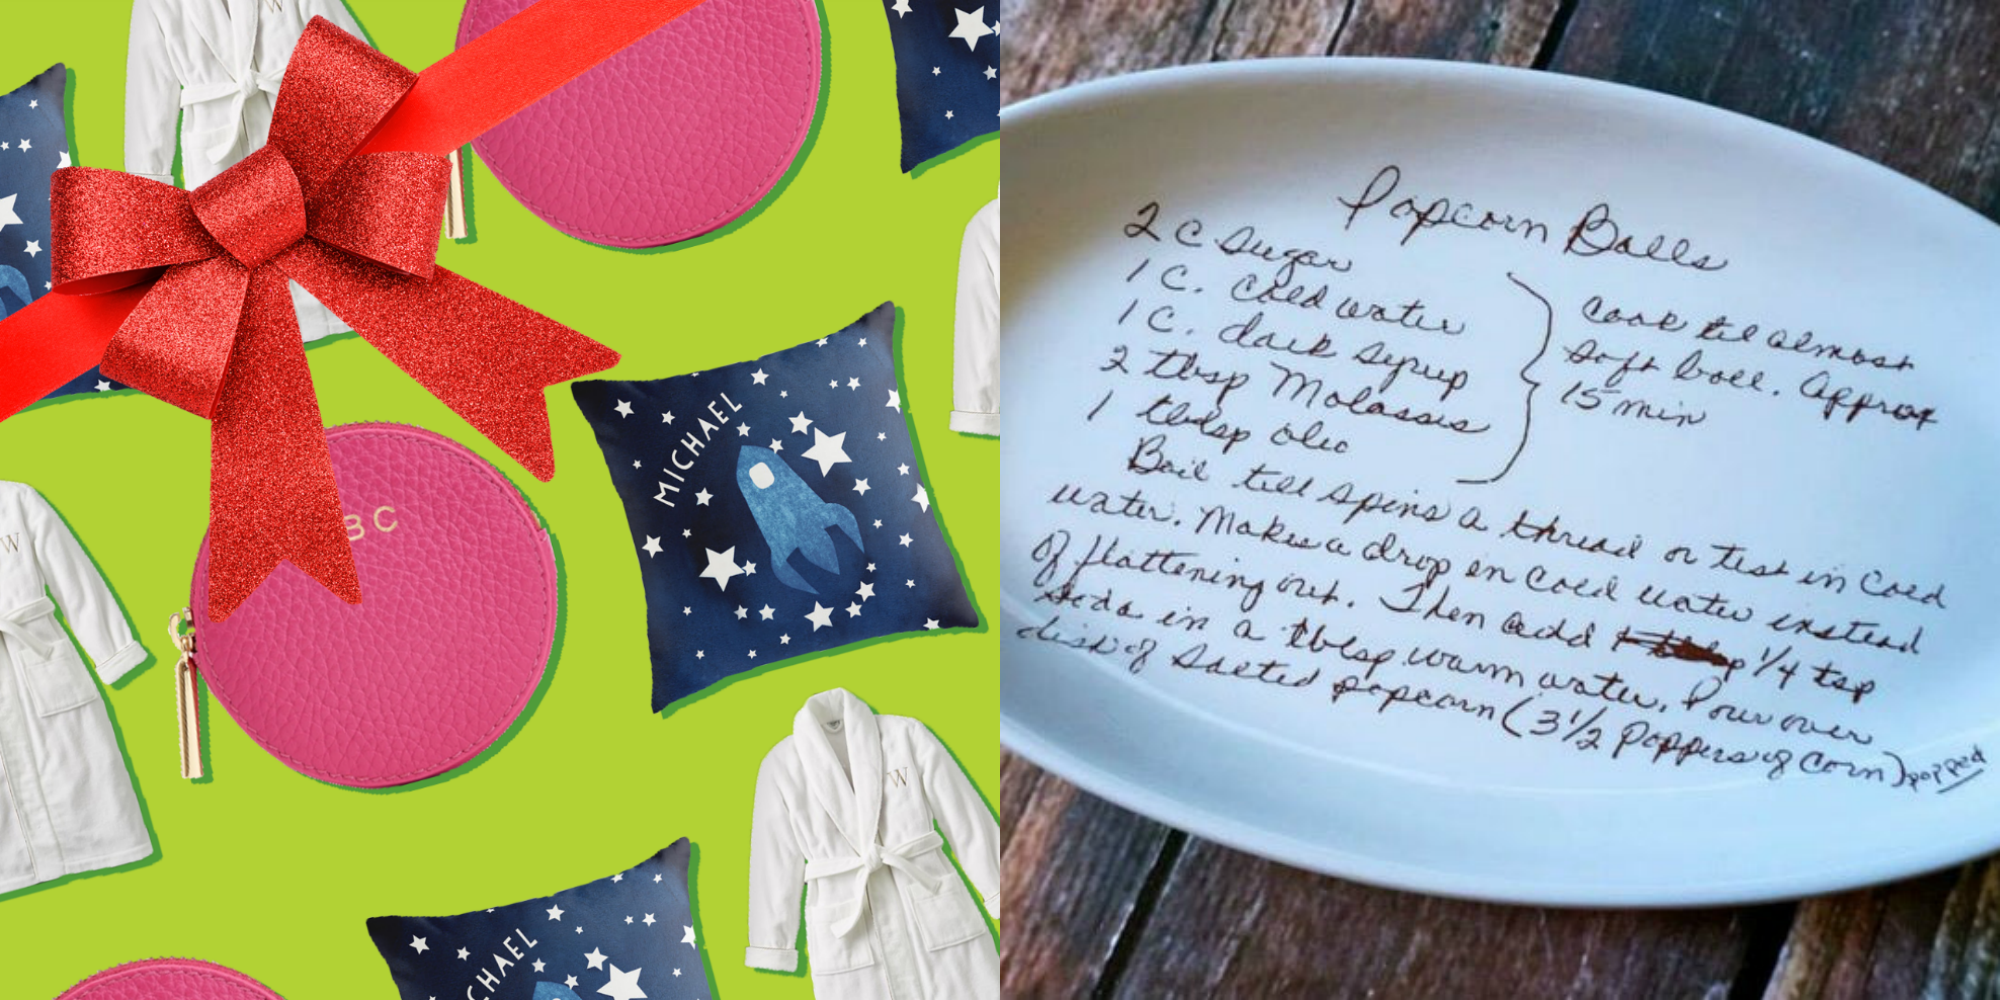 25 Personalized Gifts That Prove You're the Most Thoughtful Person Ever